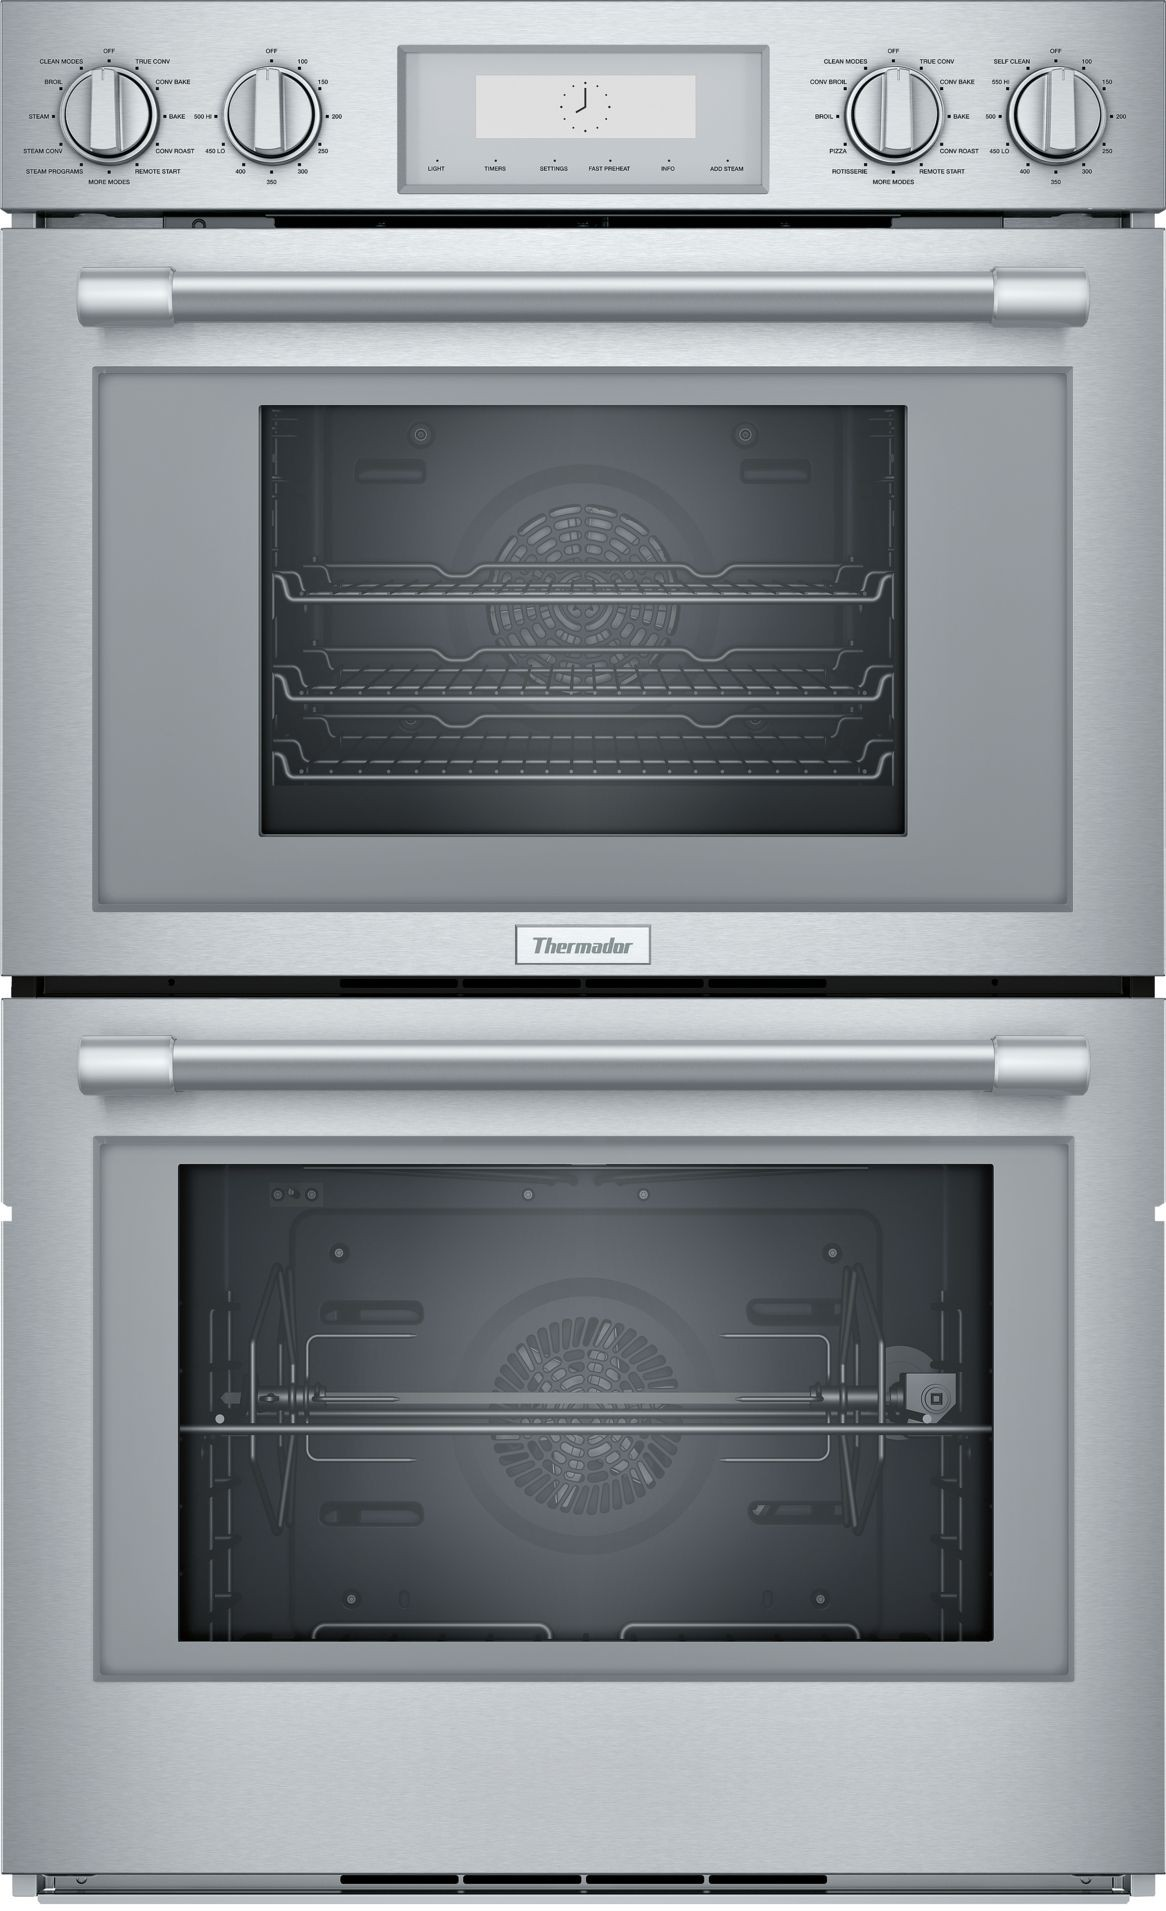 Thermador Pods302w 30 Inch Double Wall Oven With Softclose Door Telescopic Rack Rotisserie Self Clean Wi Fi Led Lights Convection And Meat Probe Wall Oven Double Oven Thermador Double Oven